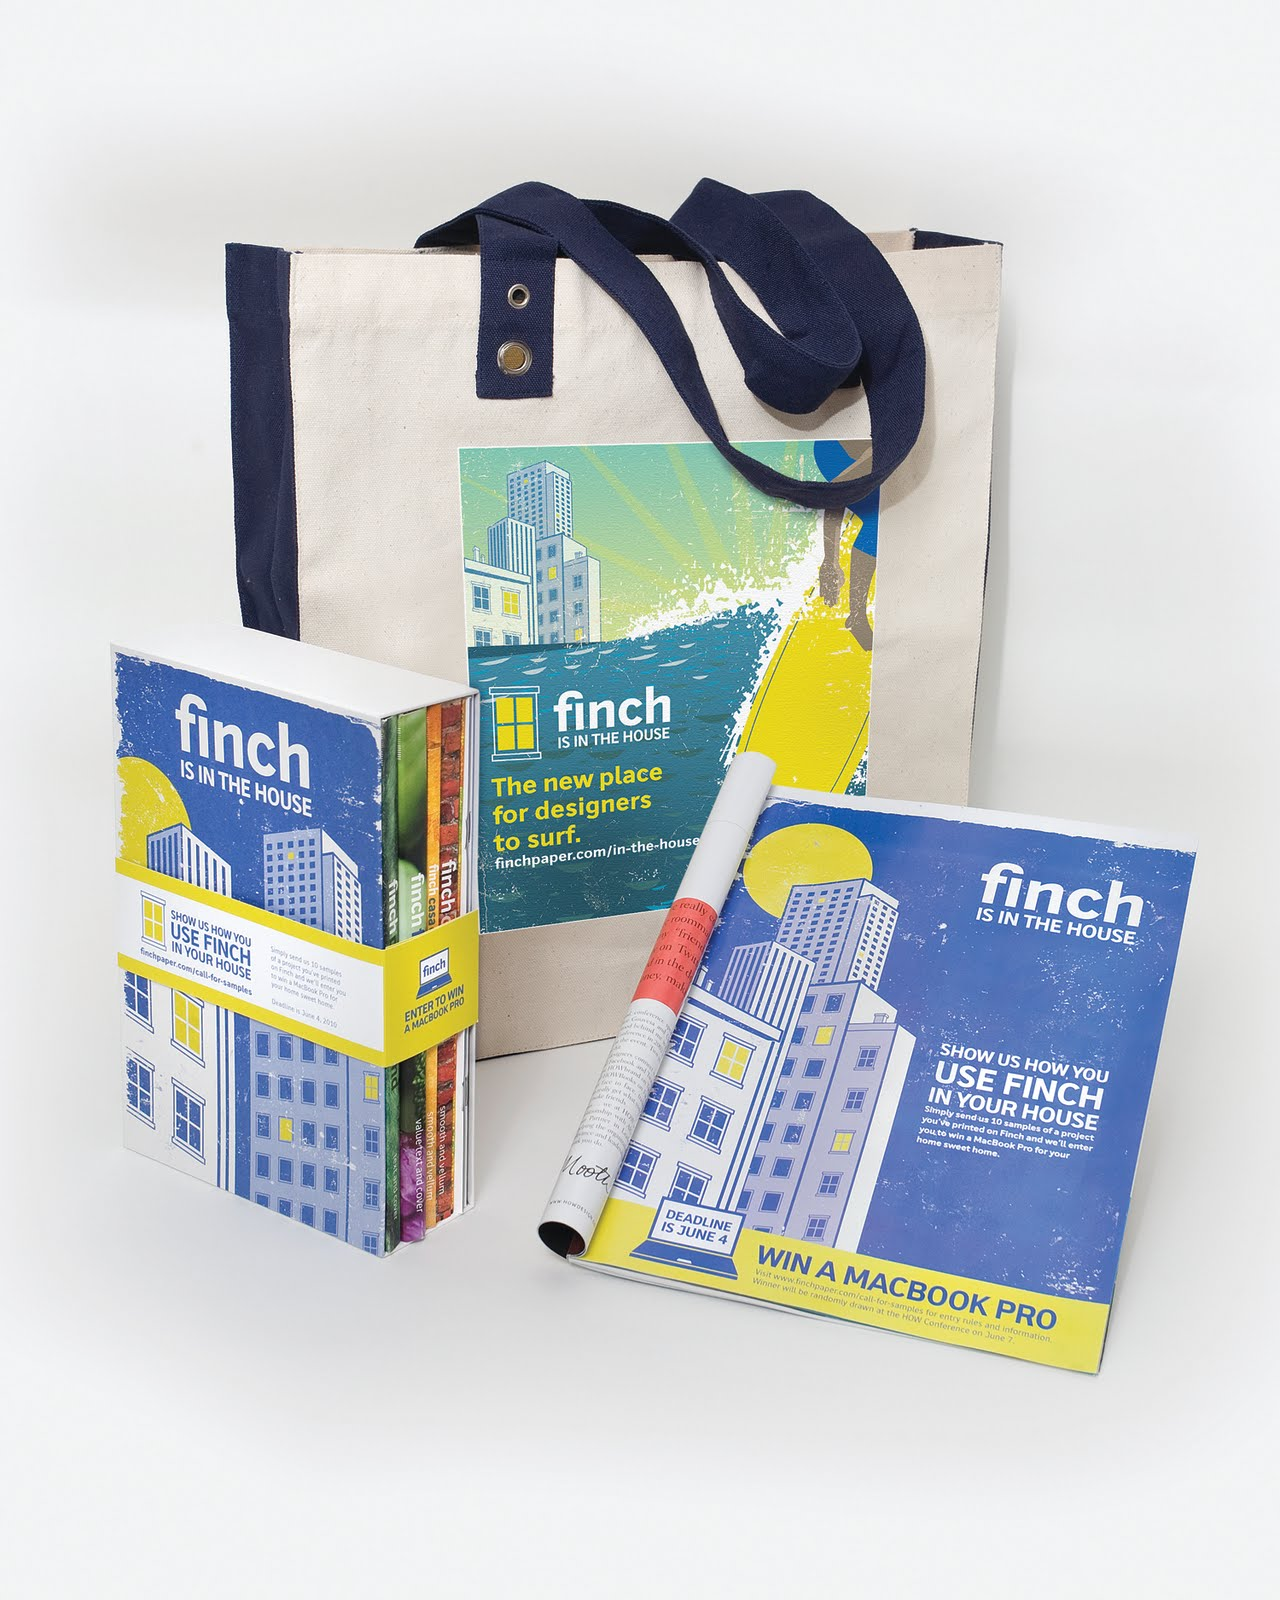 finch paper Find a job at finch paper, llc apply for finch paper, llc job opportunities from entry level to management positions at monster.